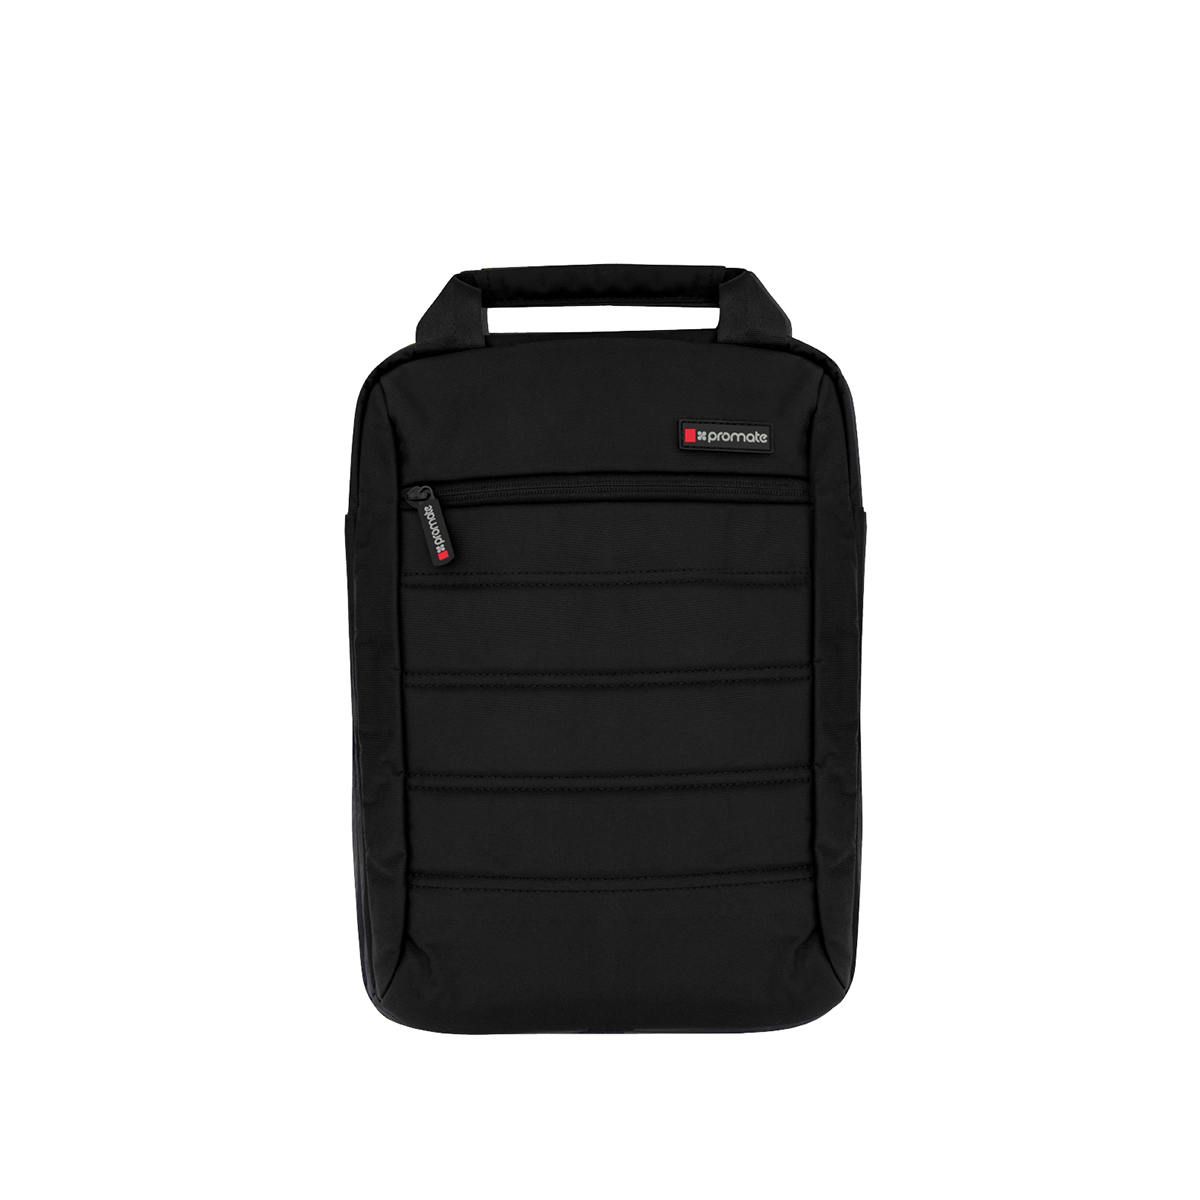 Promate Heavy Duty Messenger Bag for iPad Tablet Laptop upto 13.3 inches, Rebel-MB Black